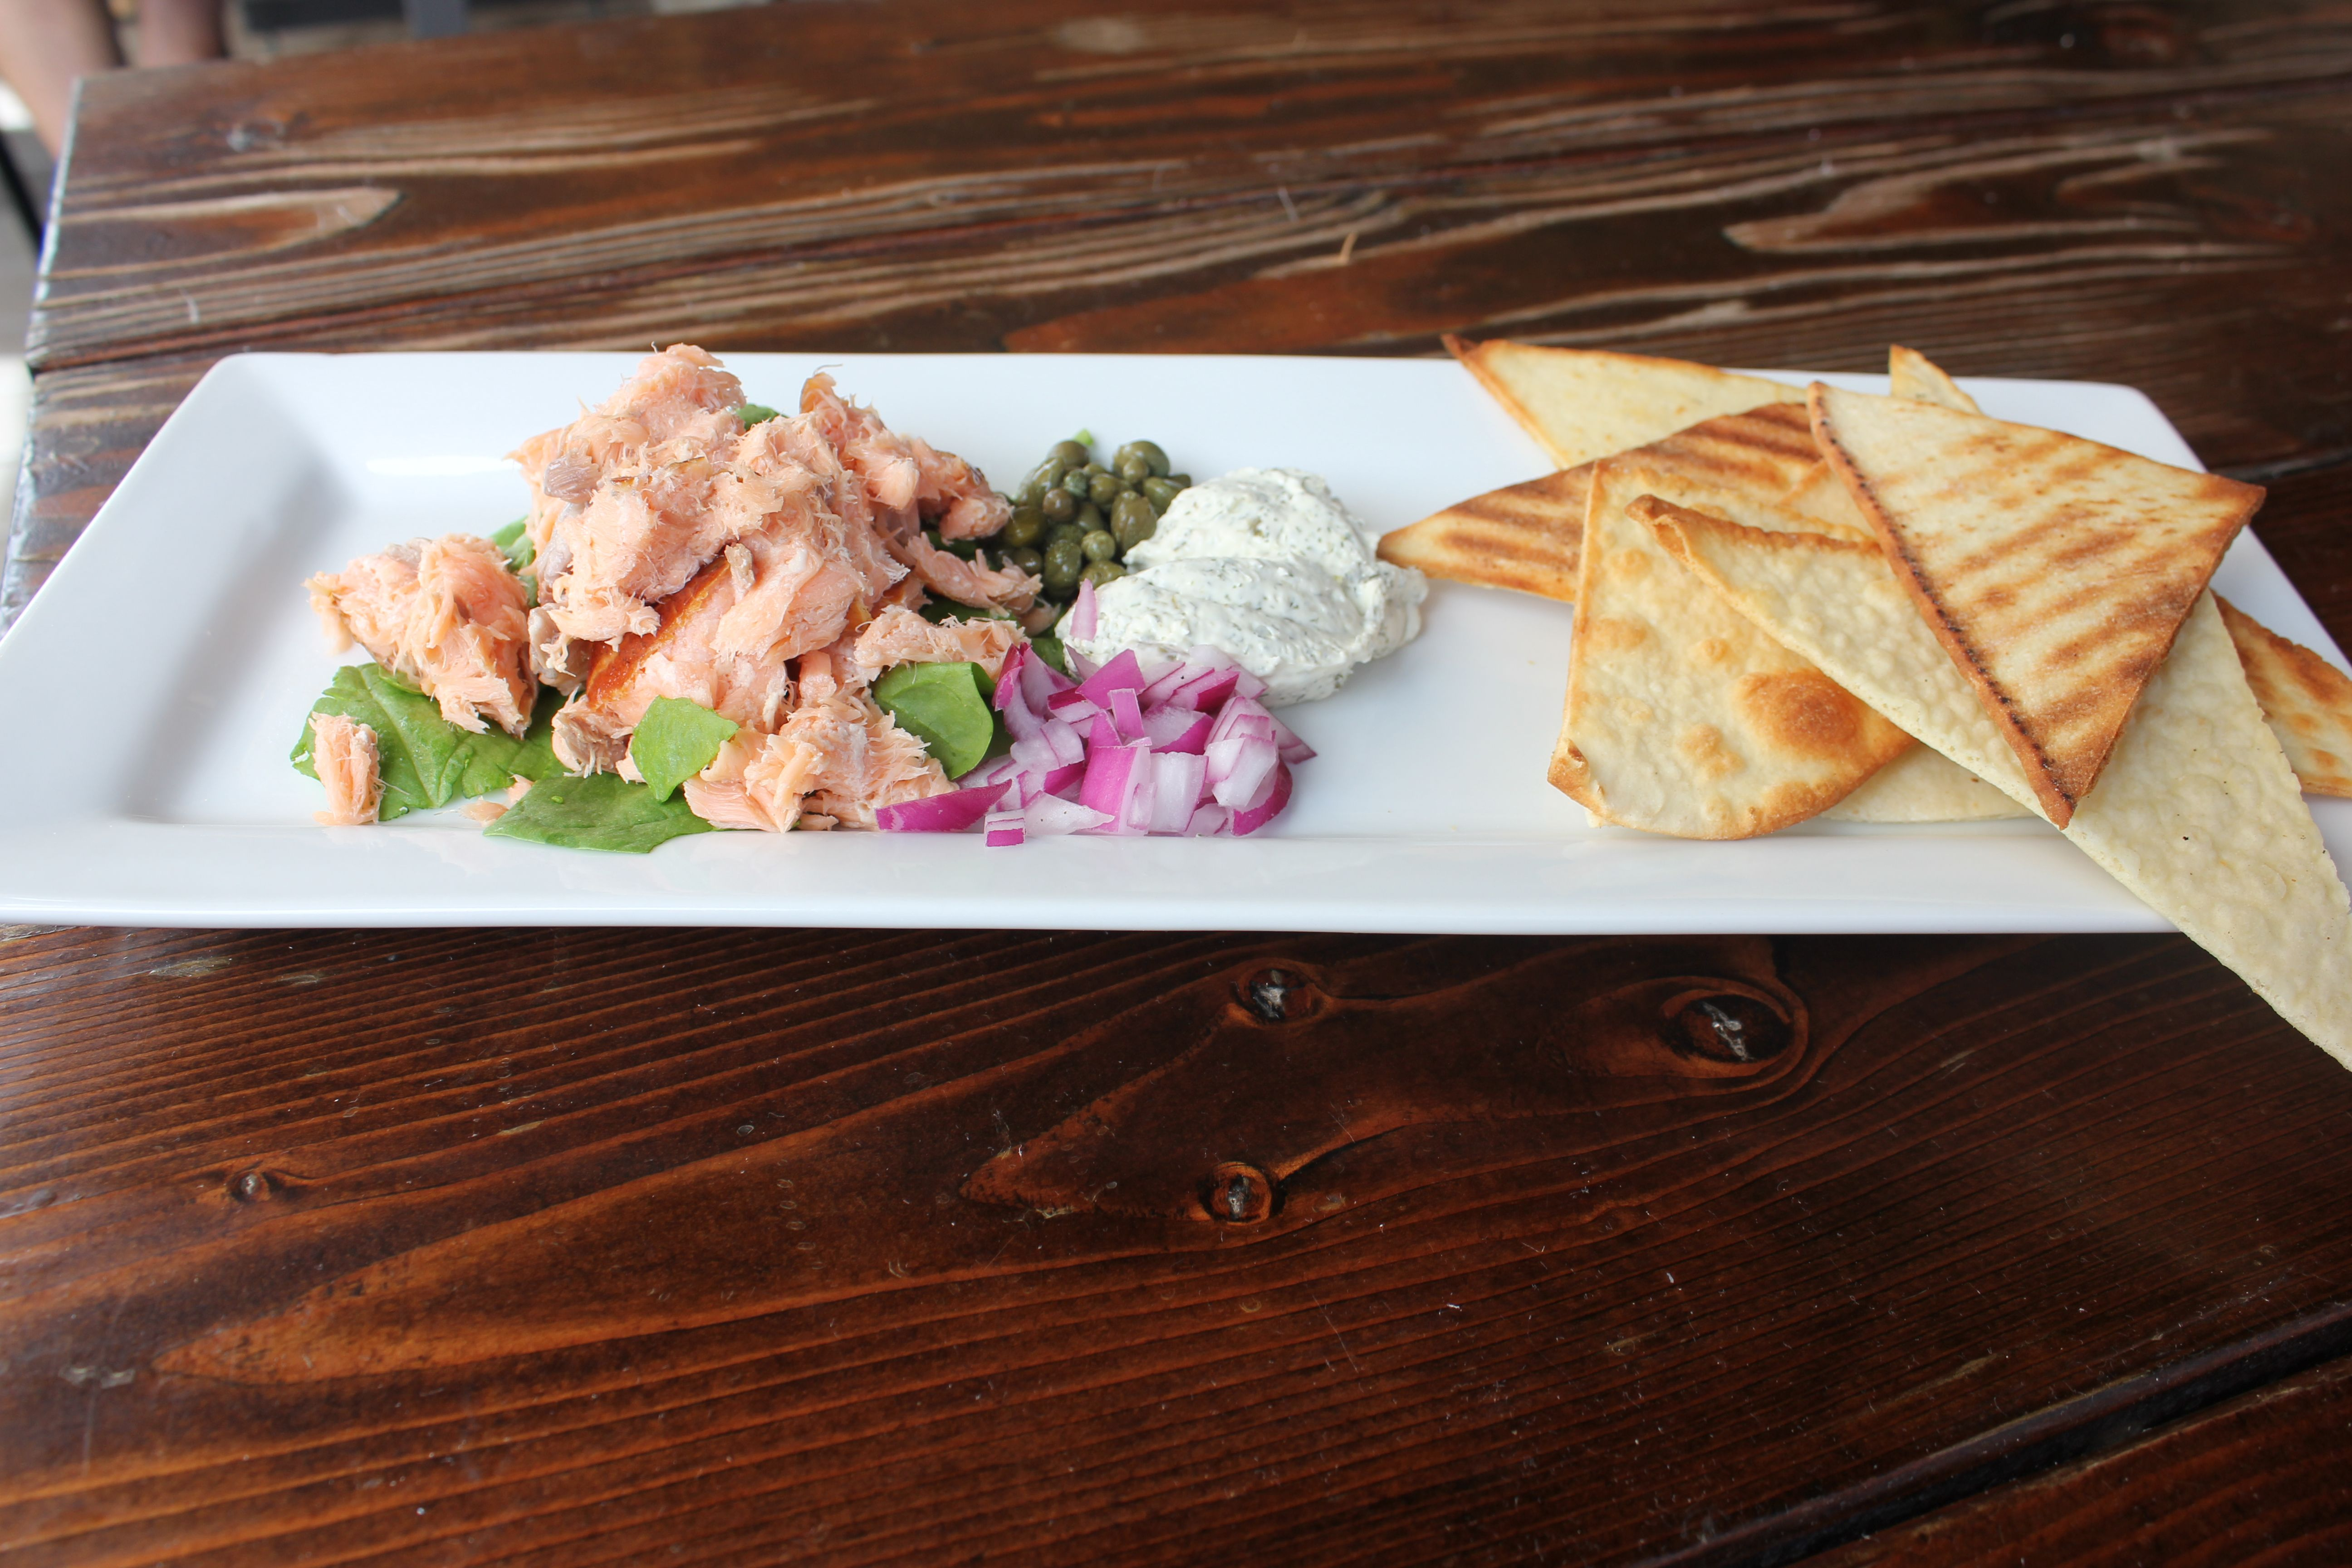 Smoked Salmon- Applewood smoked salmon, dill cream cheese mousse, capers and red onions.